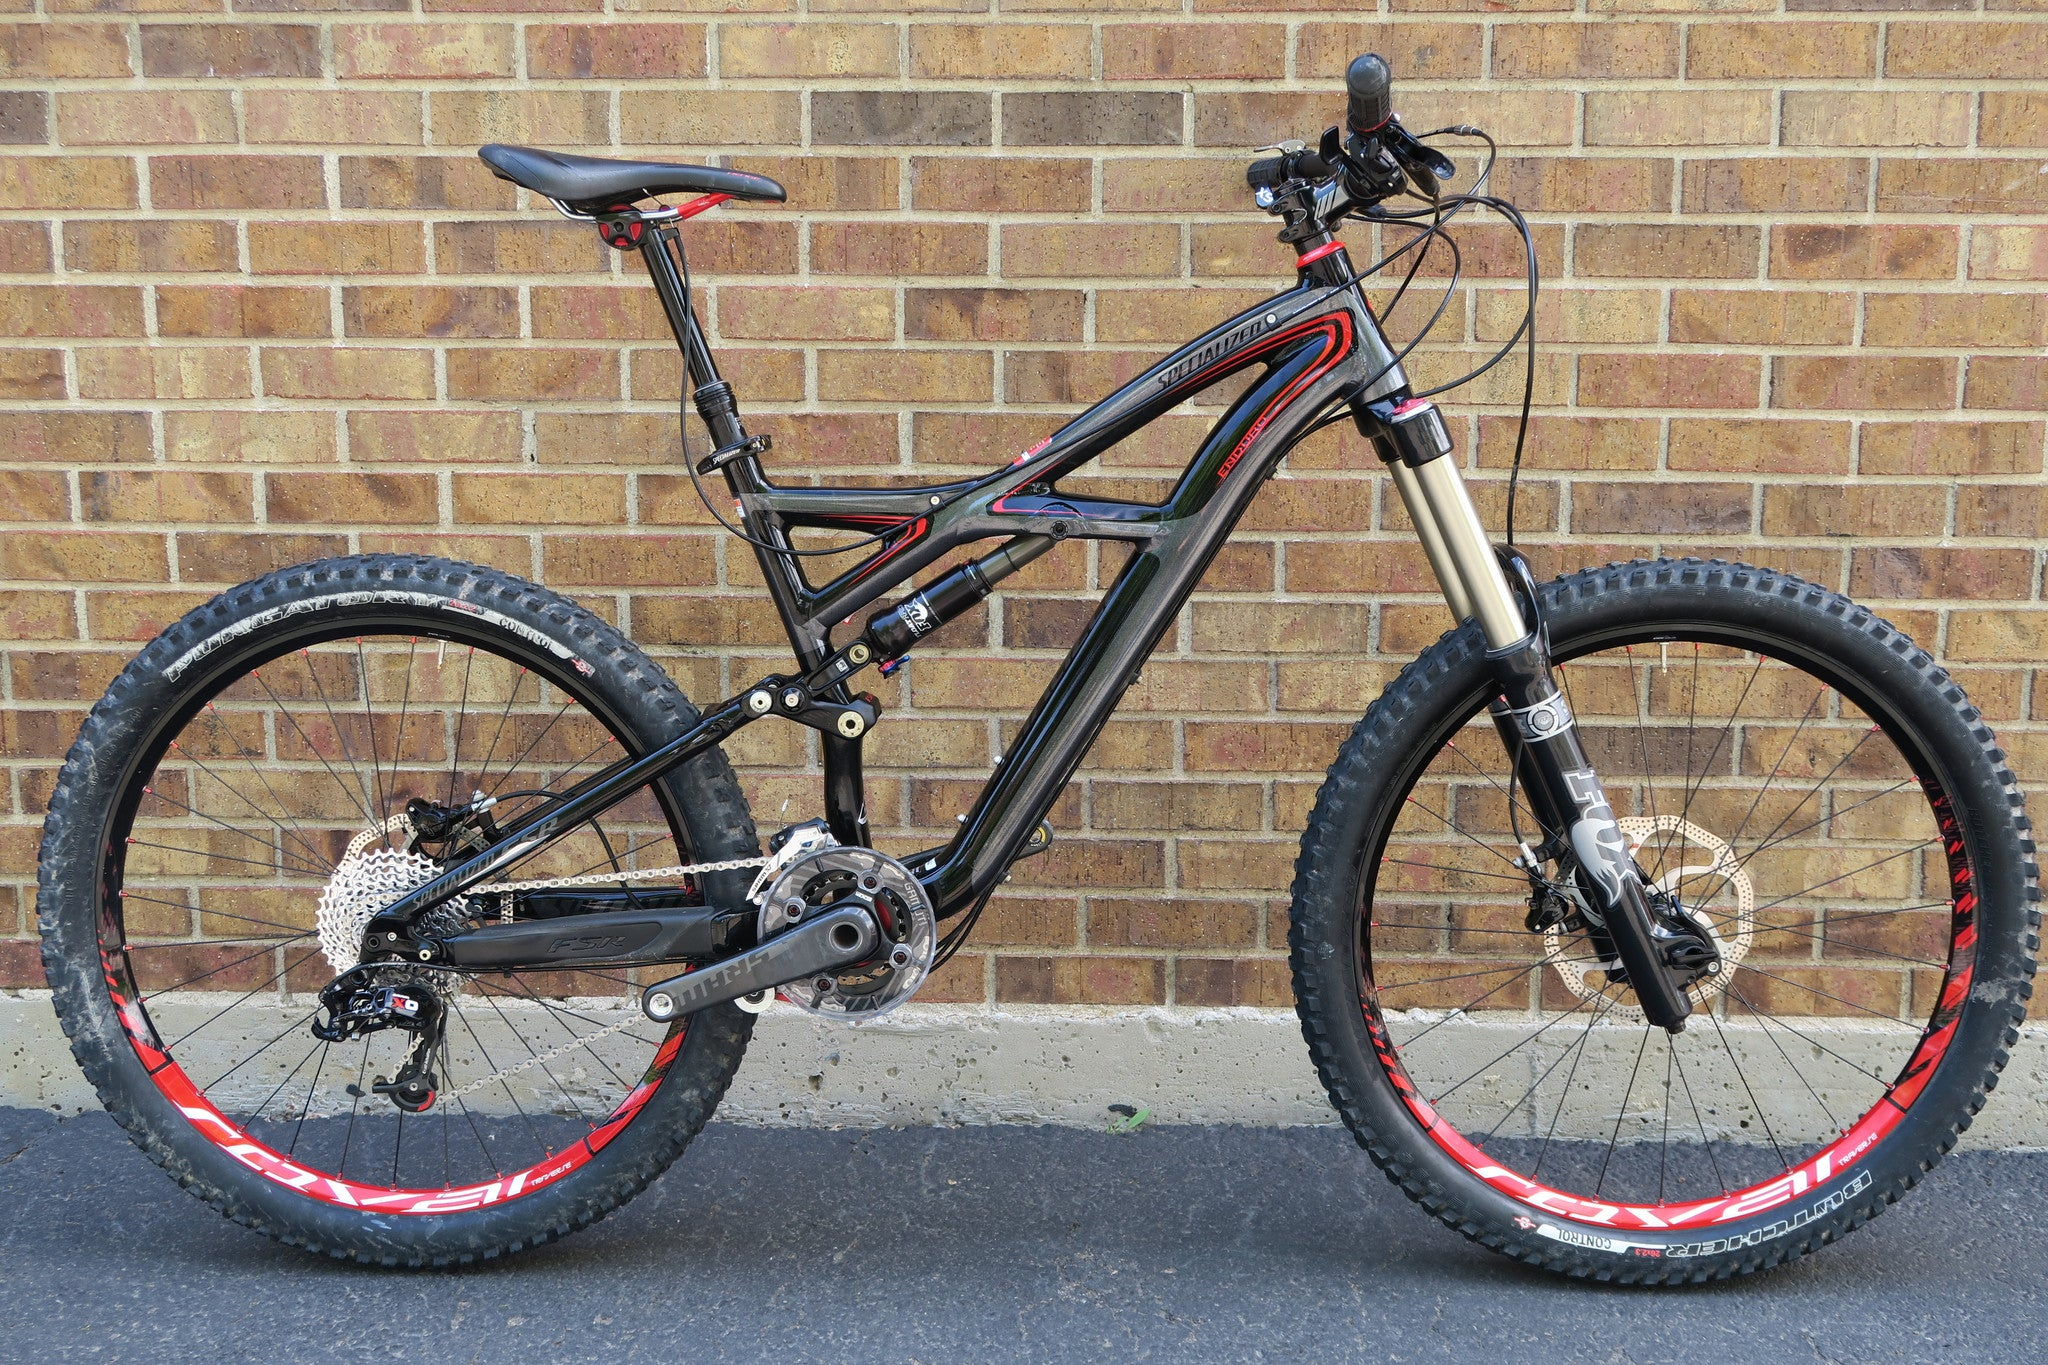 Enduro >> 2012 SPECIALIZED ENDURO EXPERT EVO 26 – Altitude Bicycles